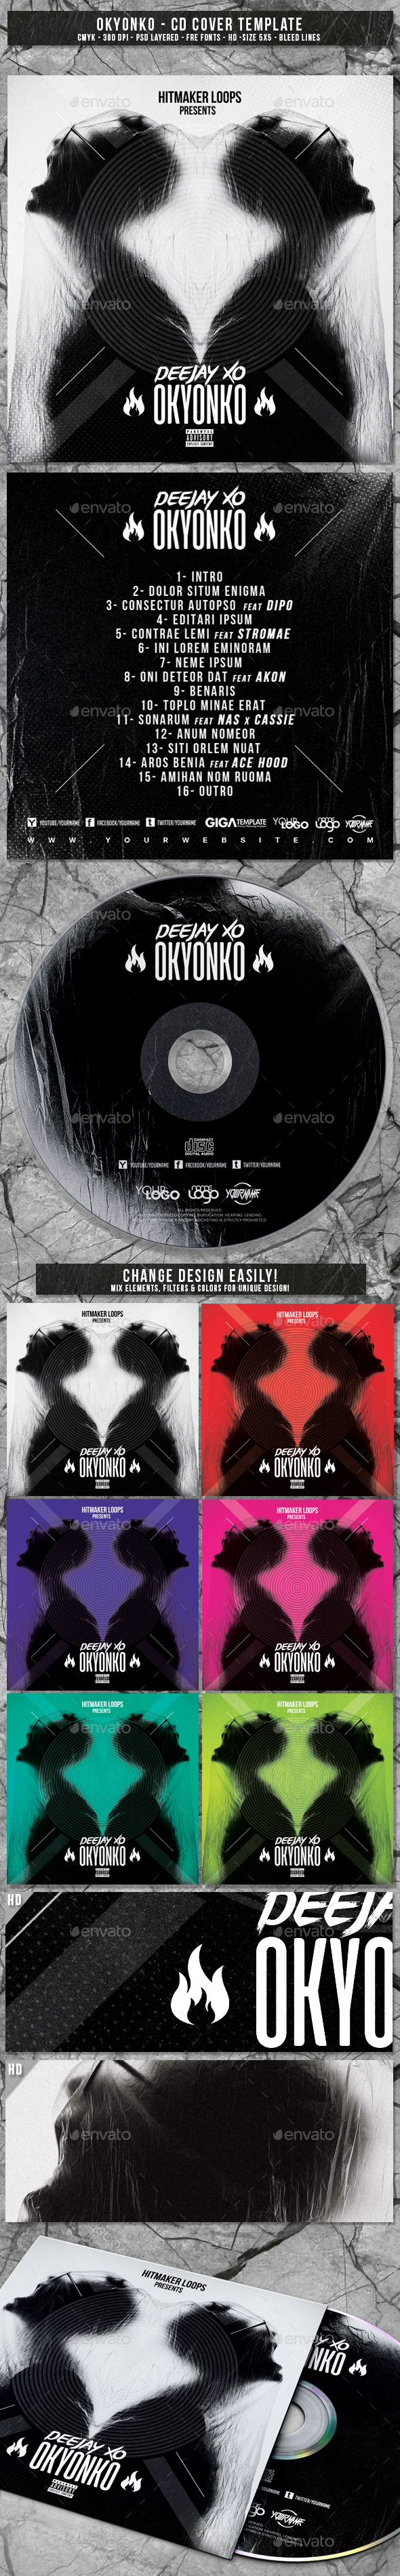 Okyonko | Album CD Mixtape Cover Template - CD & DVD Artwork Print Templates